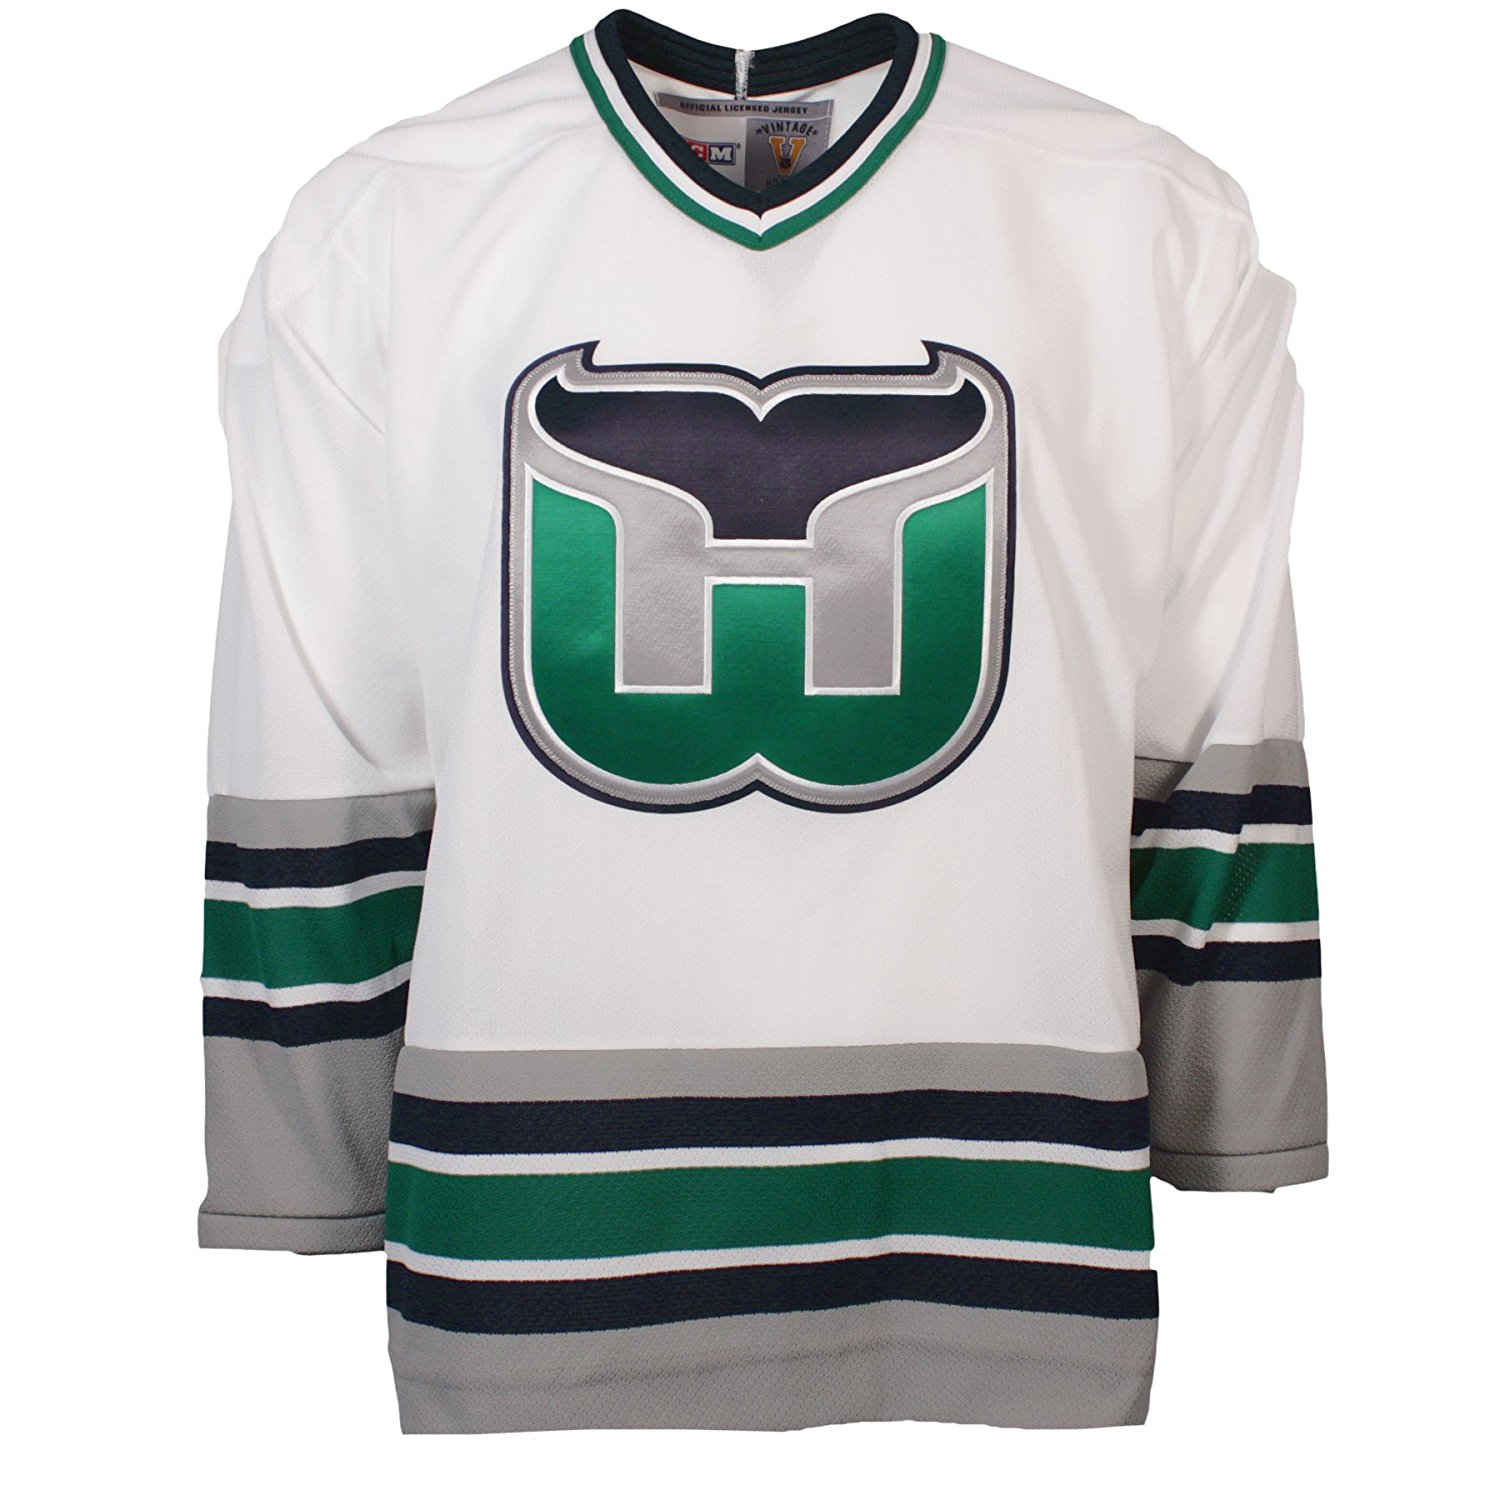 Get Quotations · Hartford Whalers Vintage Replica Jersey 1992 (Home) e33fbc193